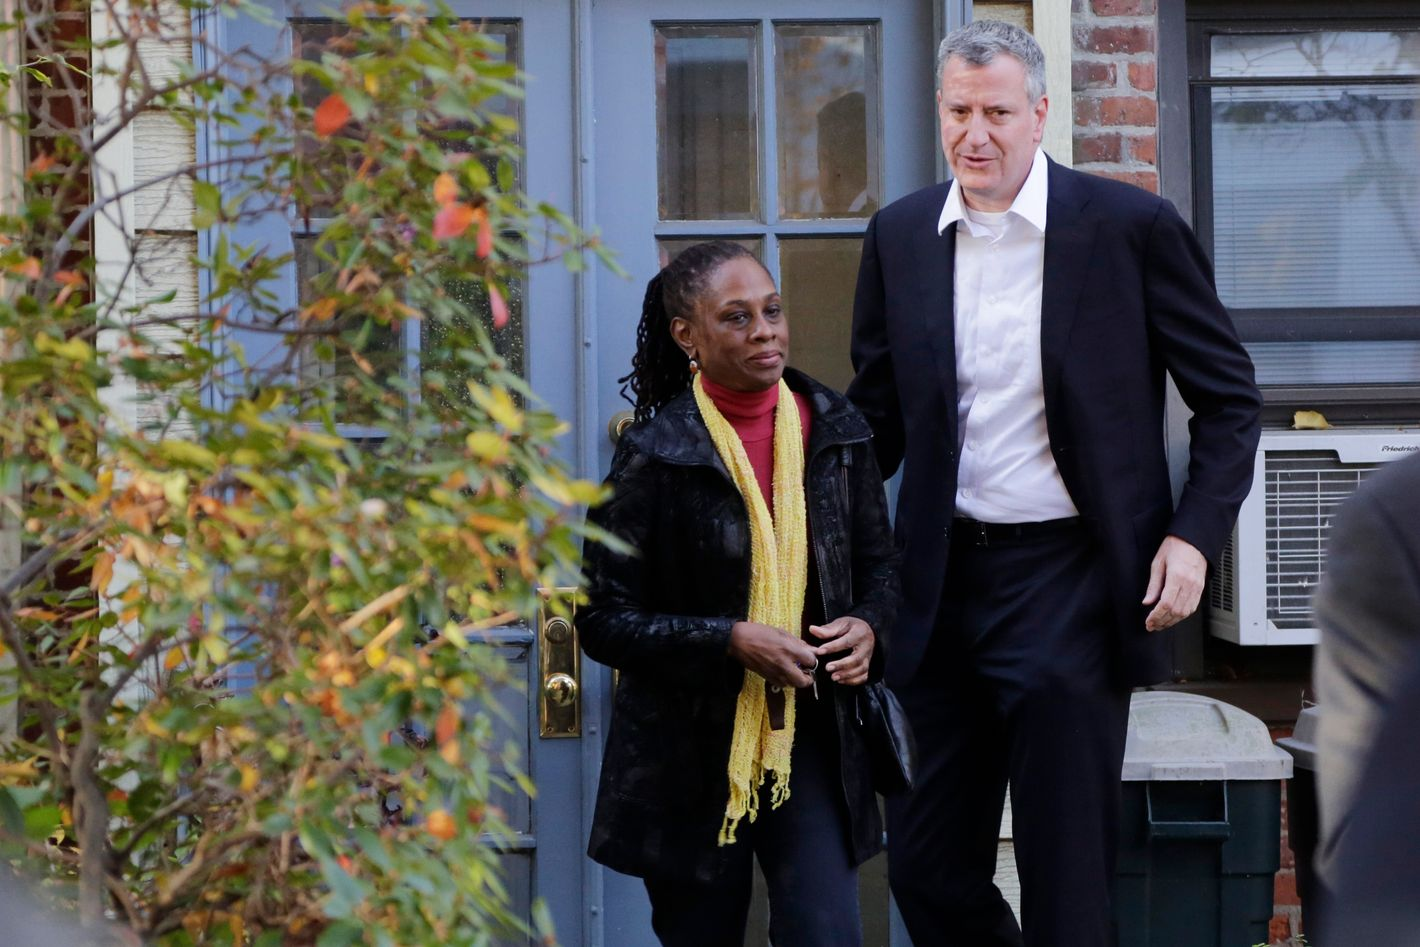 In this Nov. 6, 2013 photo, Chirlane McCray and her husband Bill de Blasio leave their house in the Park Slope neighborhood in the Brooklyn borough of New York. Now de Blasio faces a crucial early decision: should he leave Park Slope behind to move to the mayor's official residence, stately Gracie Mansion on Manhattan's Upper East Side?